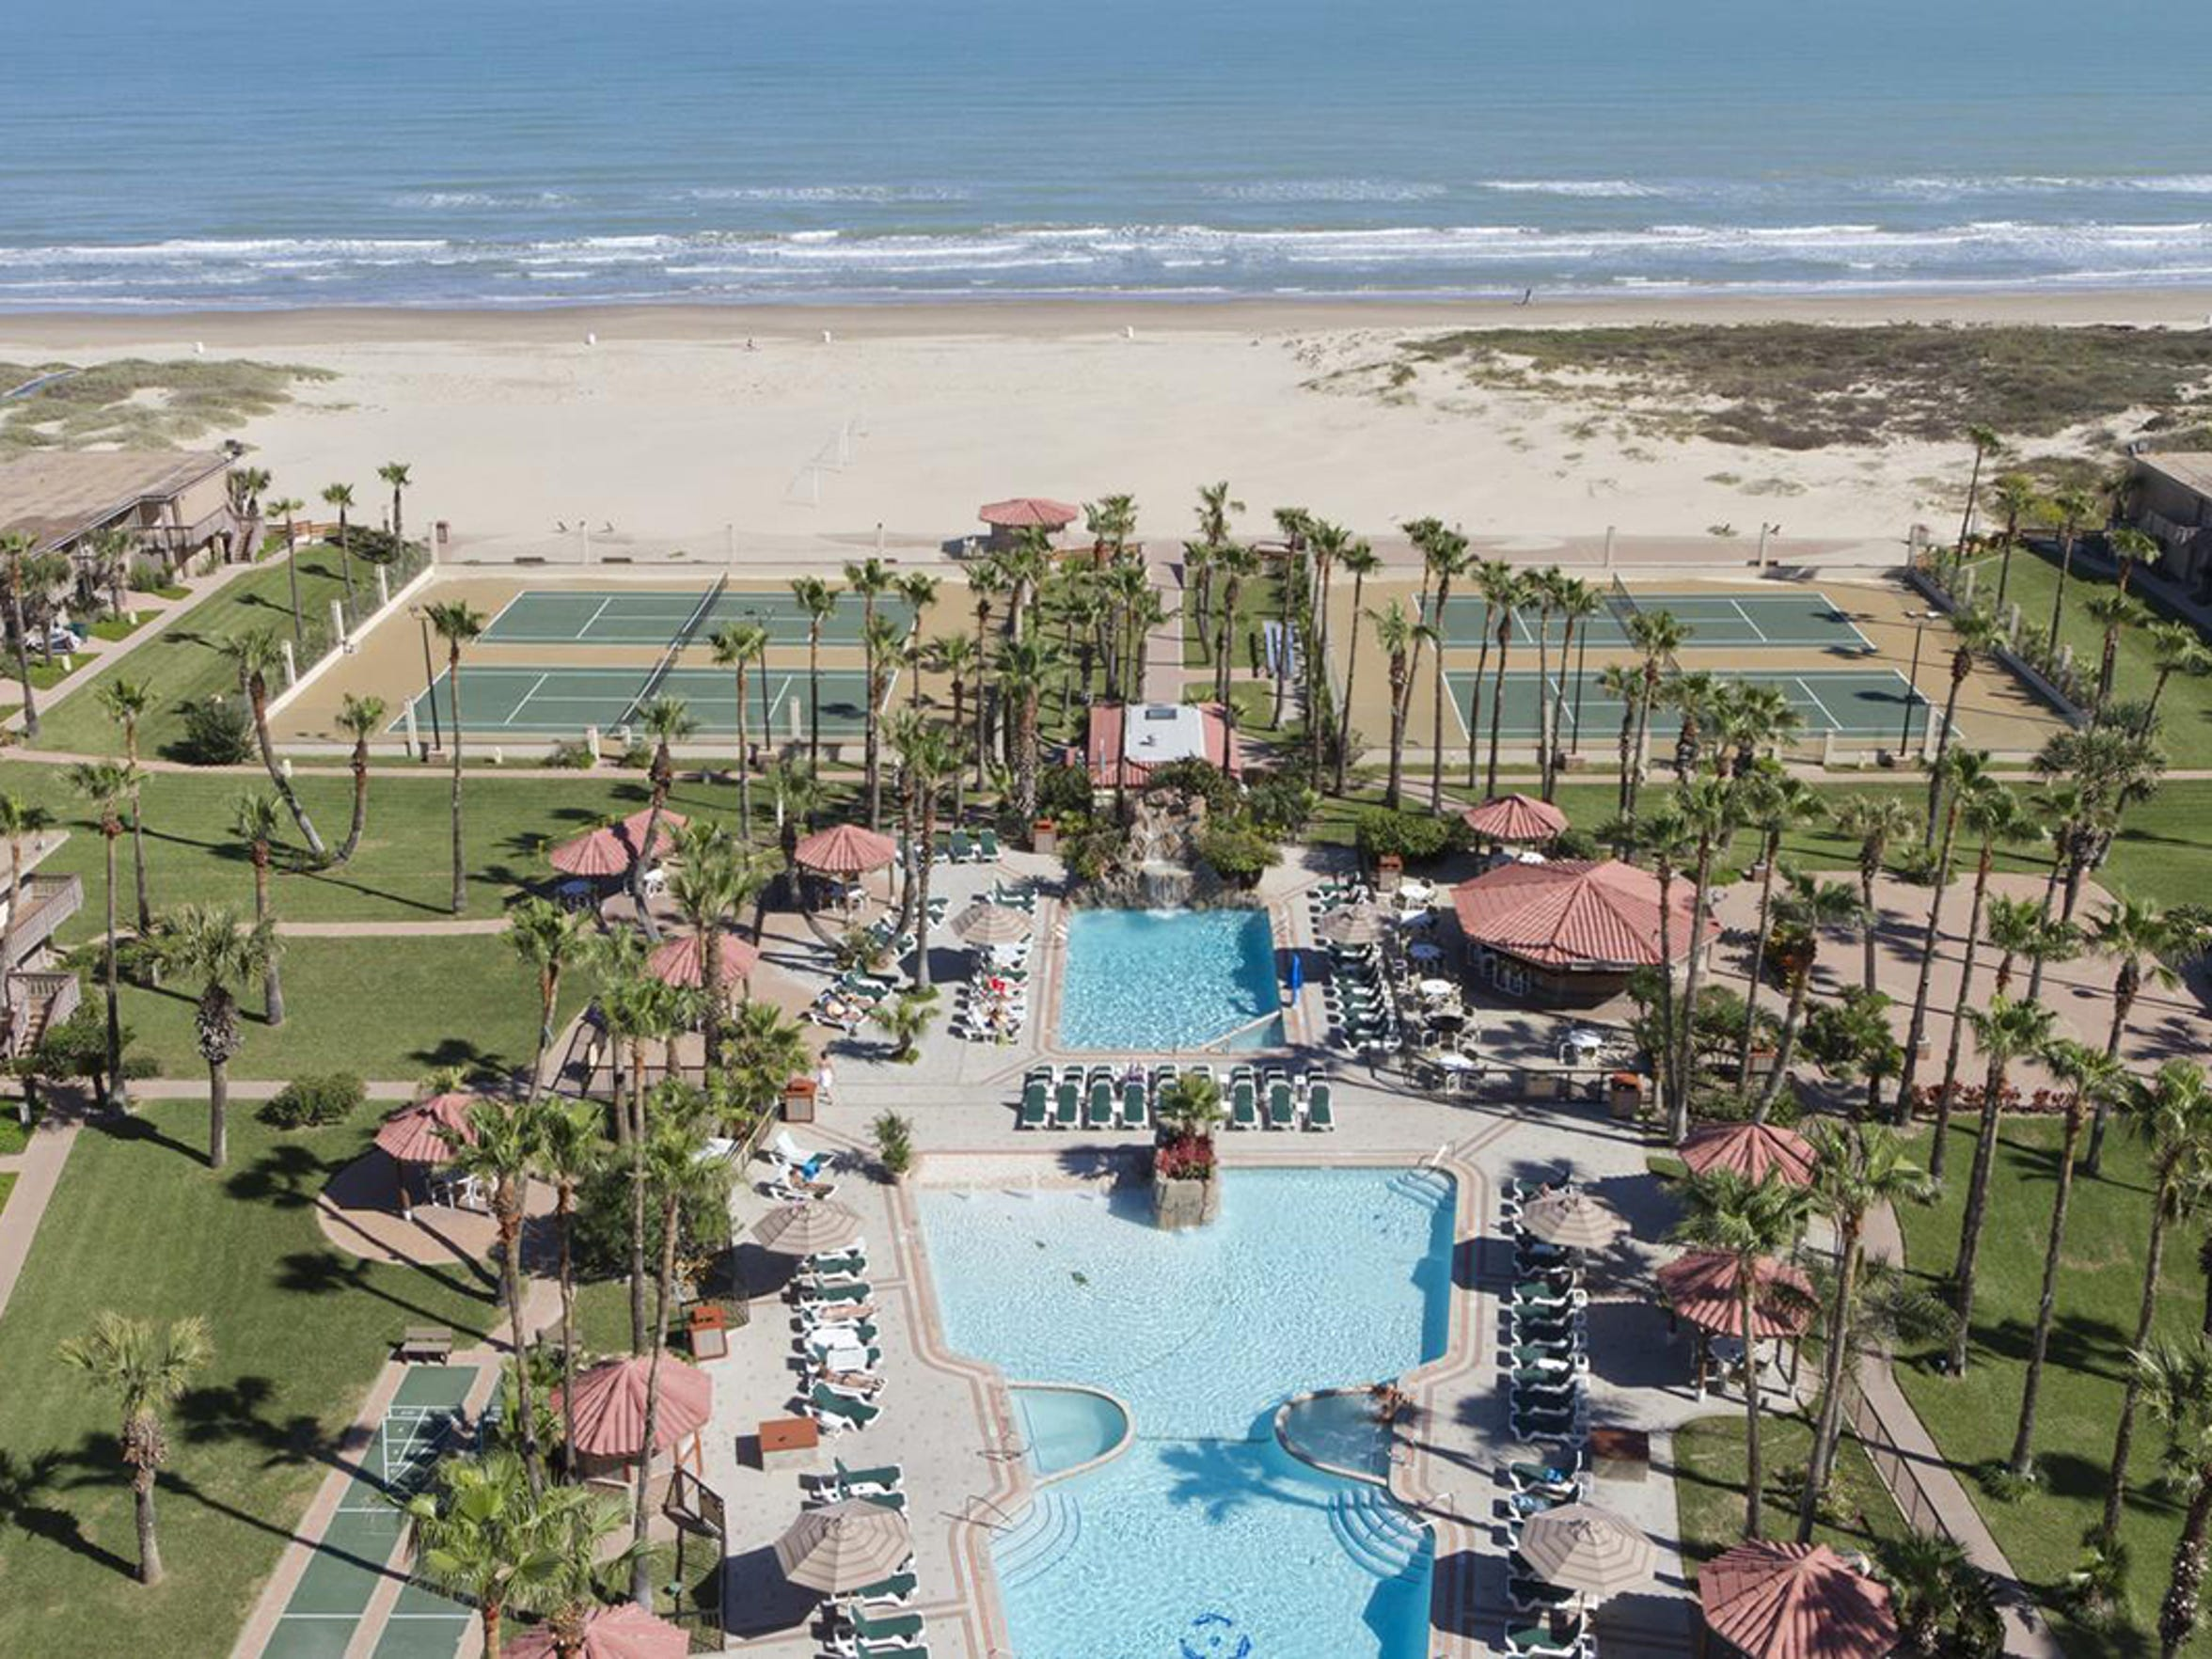 The Isla Grand Beach Resort South Padre Island, formerly